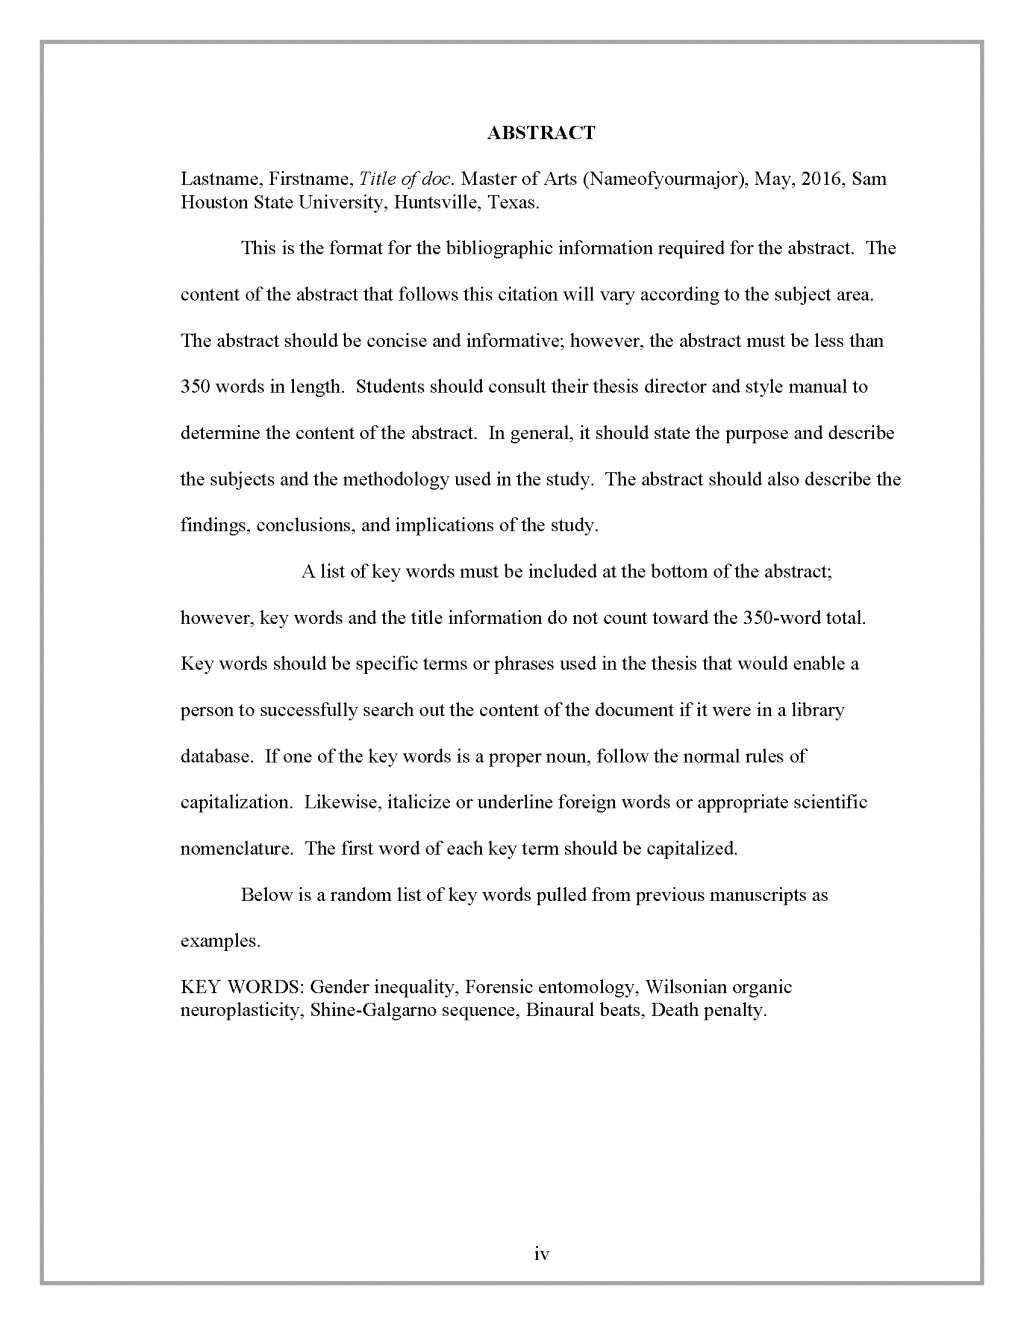 009 Example Of An Abstract For Scientific Research Paper Border Stirring A Large